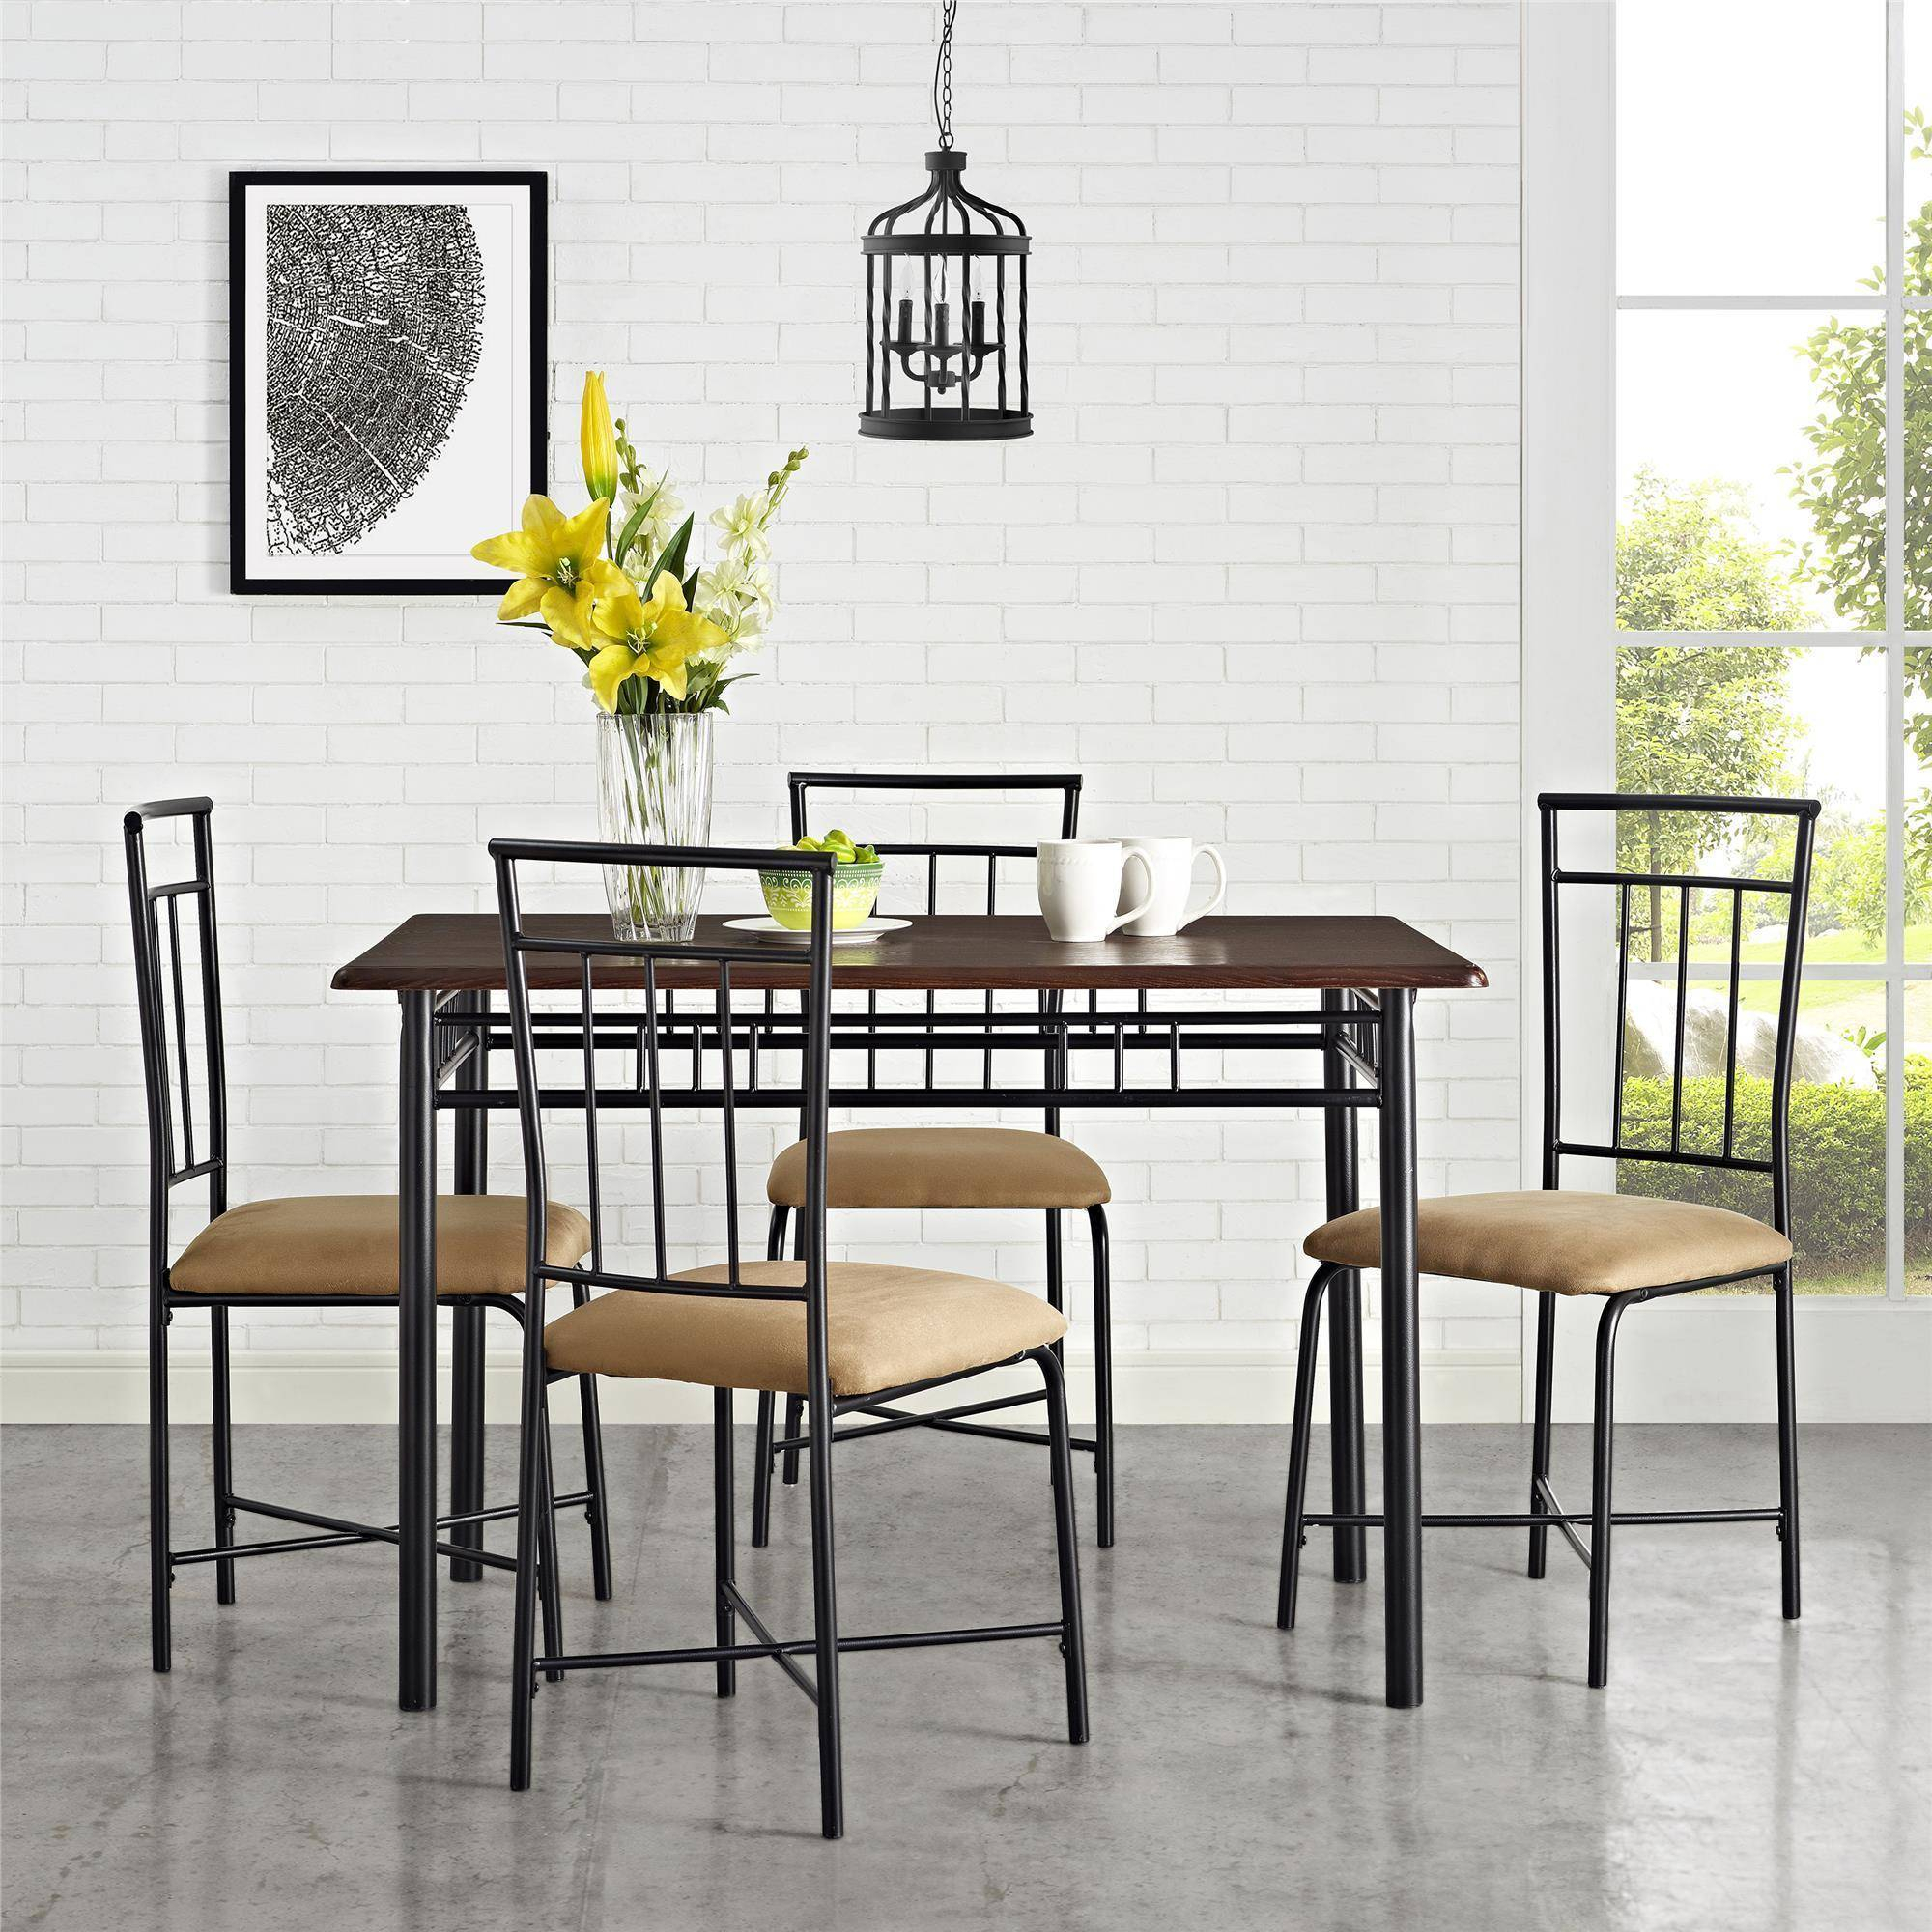 West Hill Family Table 3 Piece Dining Sets Pertaining To Most Current Mainstays 5 Piece Dining Set, Multiple Colors – Walmart (#16 of 20)